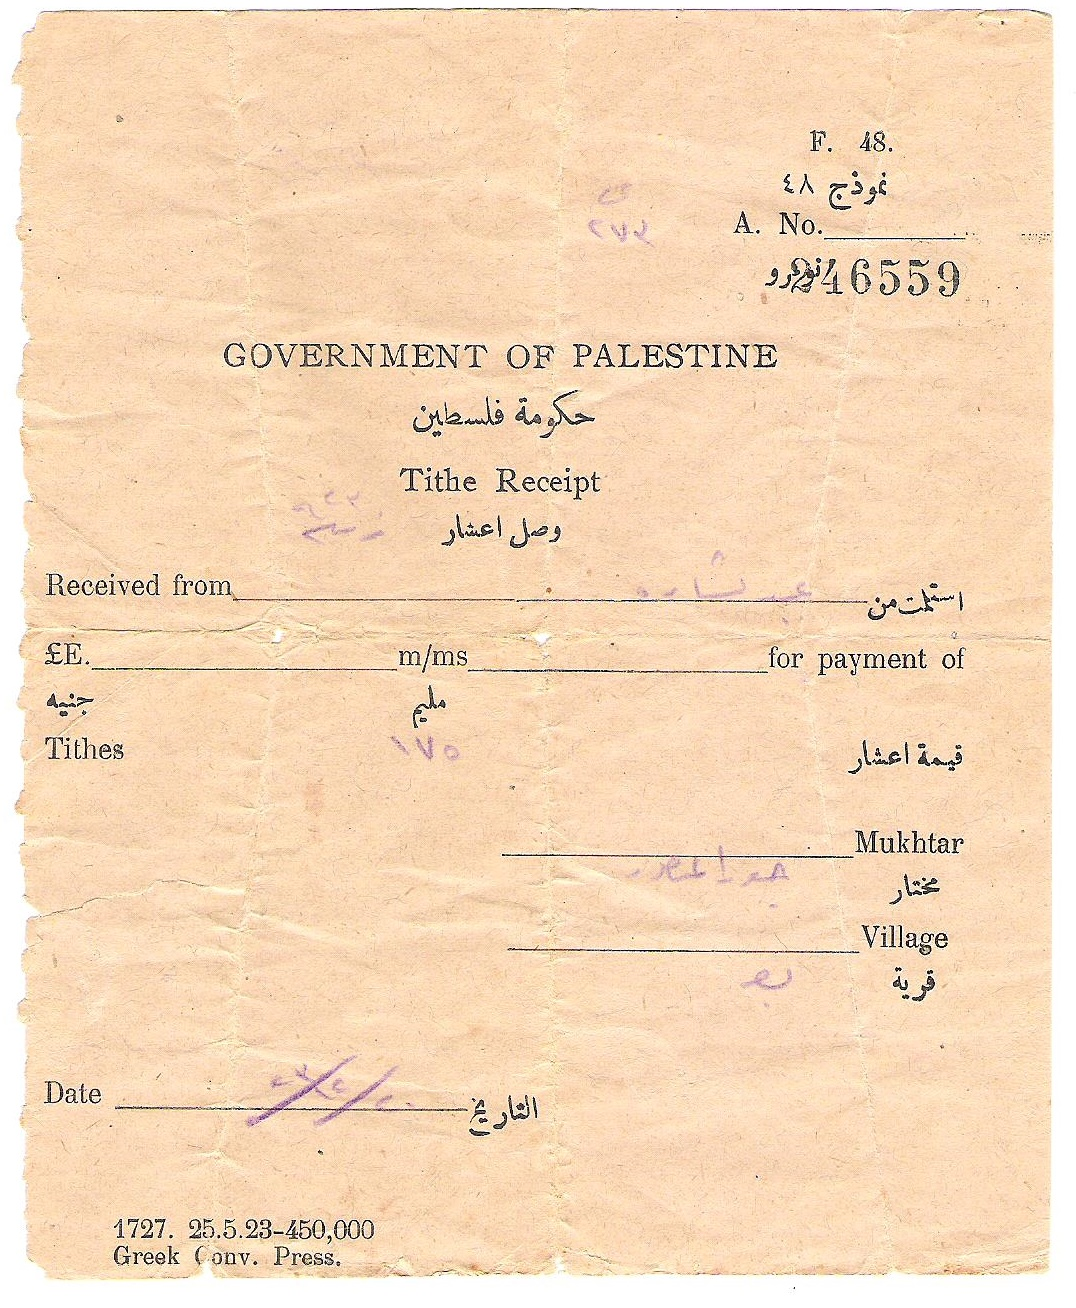 al-Bassa - البصة : Here is a  preview of one my family´s old documents from al-Bassa, which are in my possession.